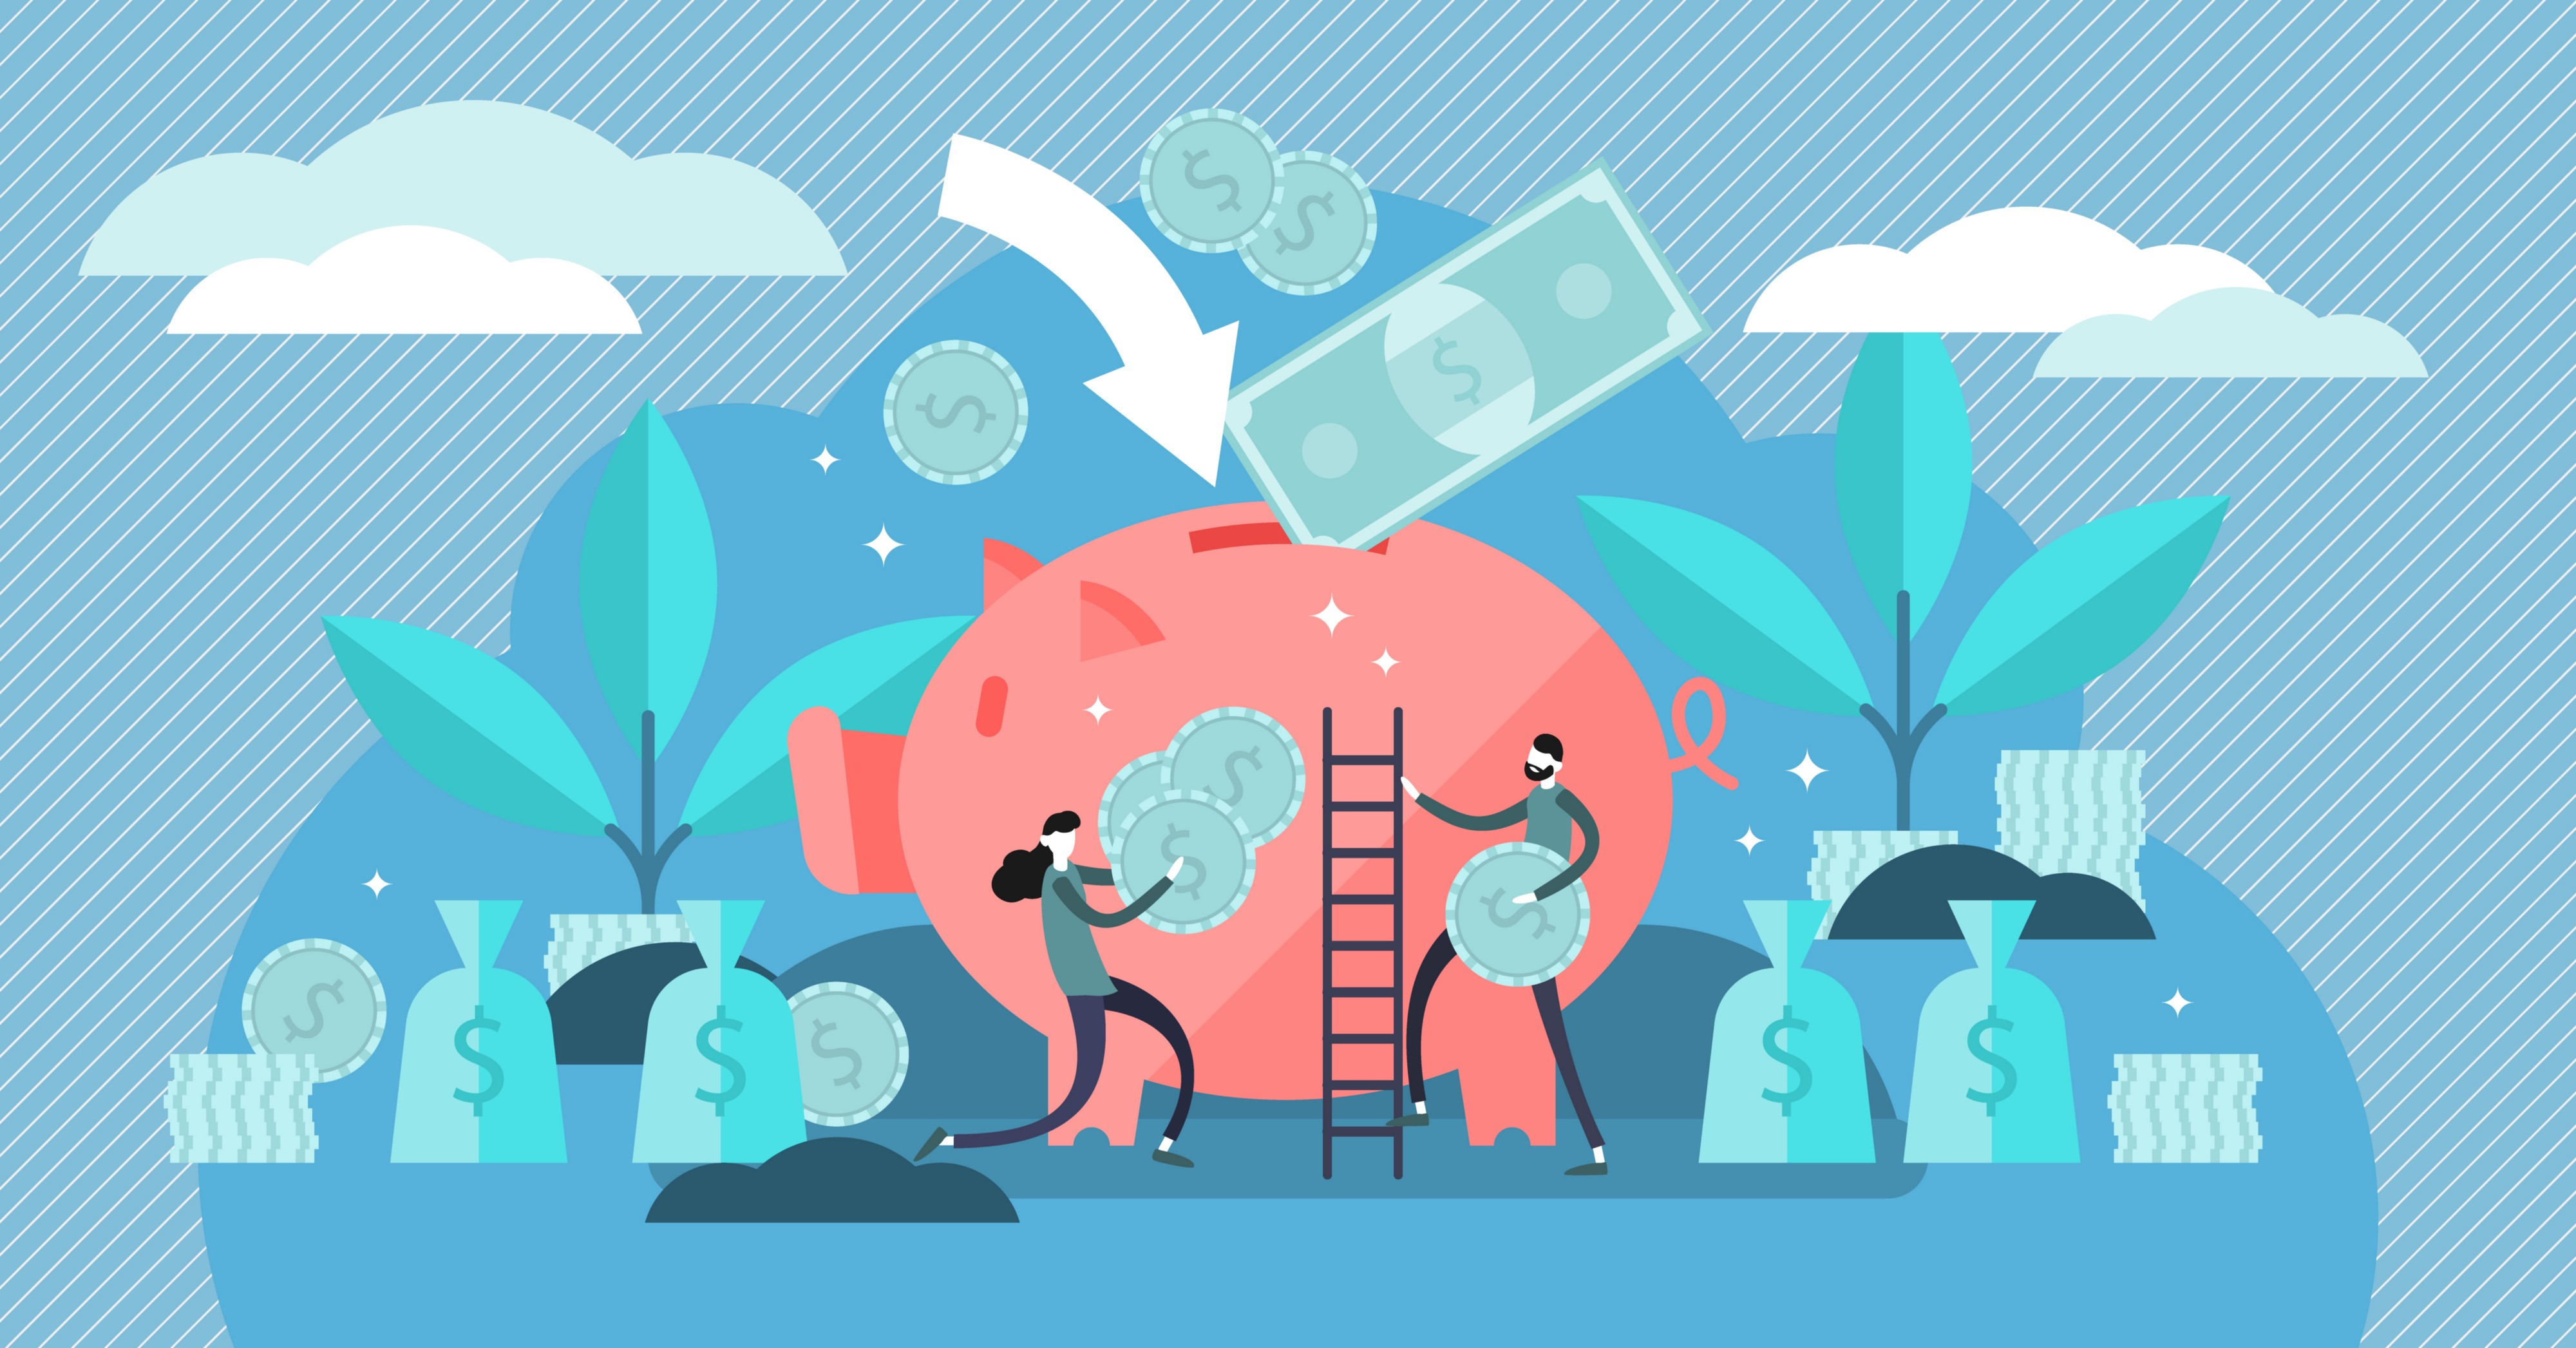 Concept illustration of people saving money and climbing a ladder to drop in money.